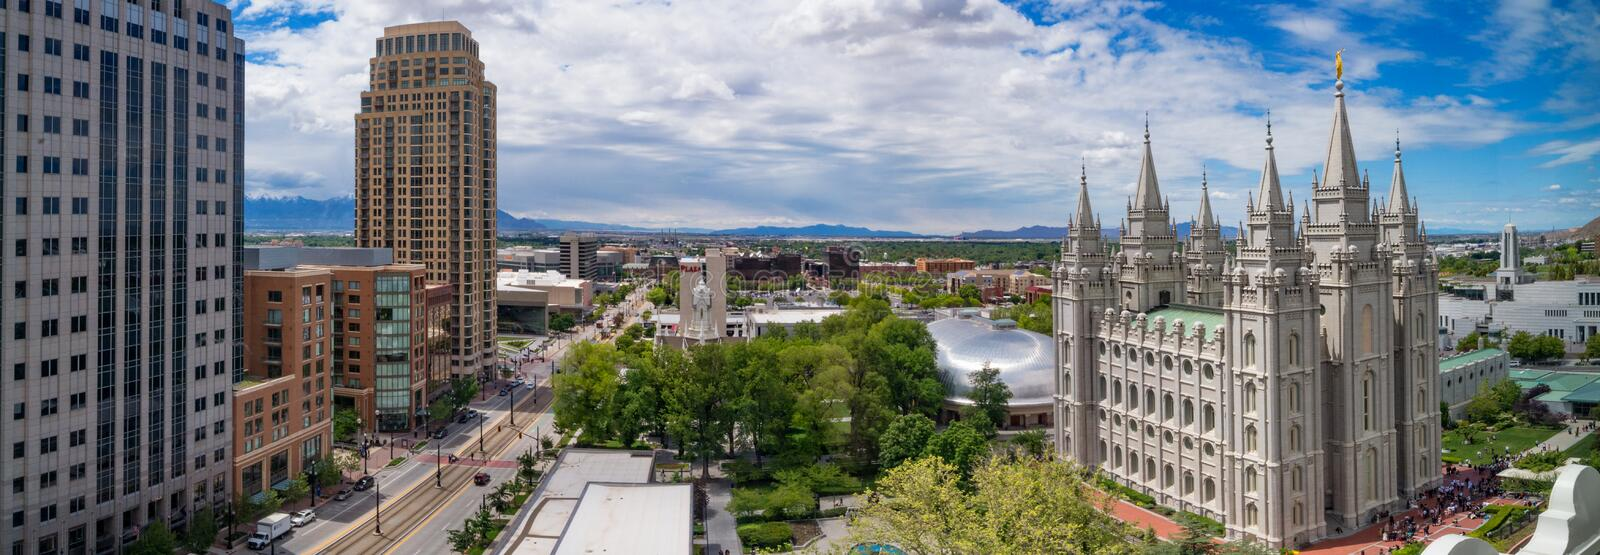 Panoramic view of Salt Lake City downtown, Utah, USA royalty free stock photography